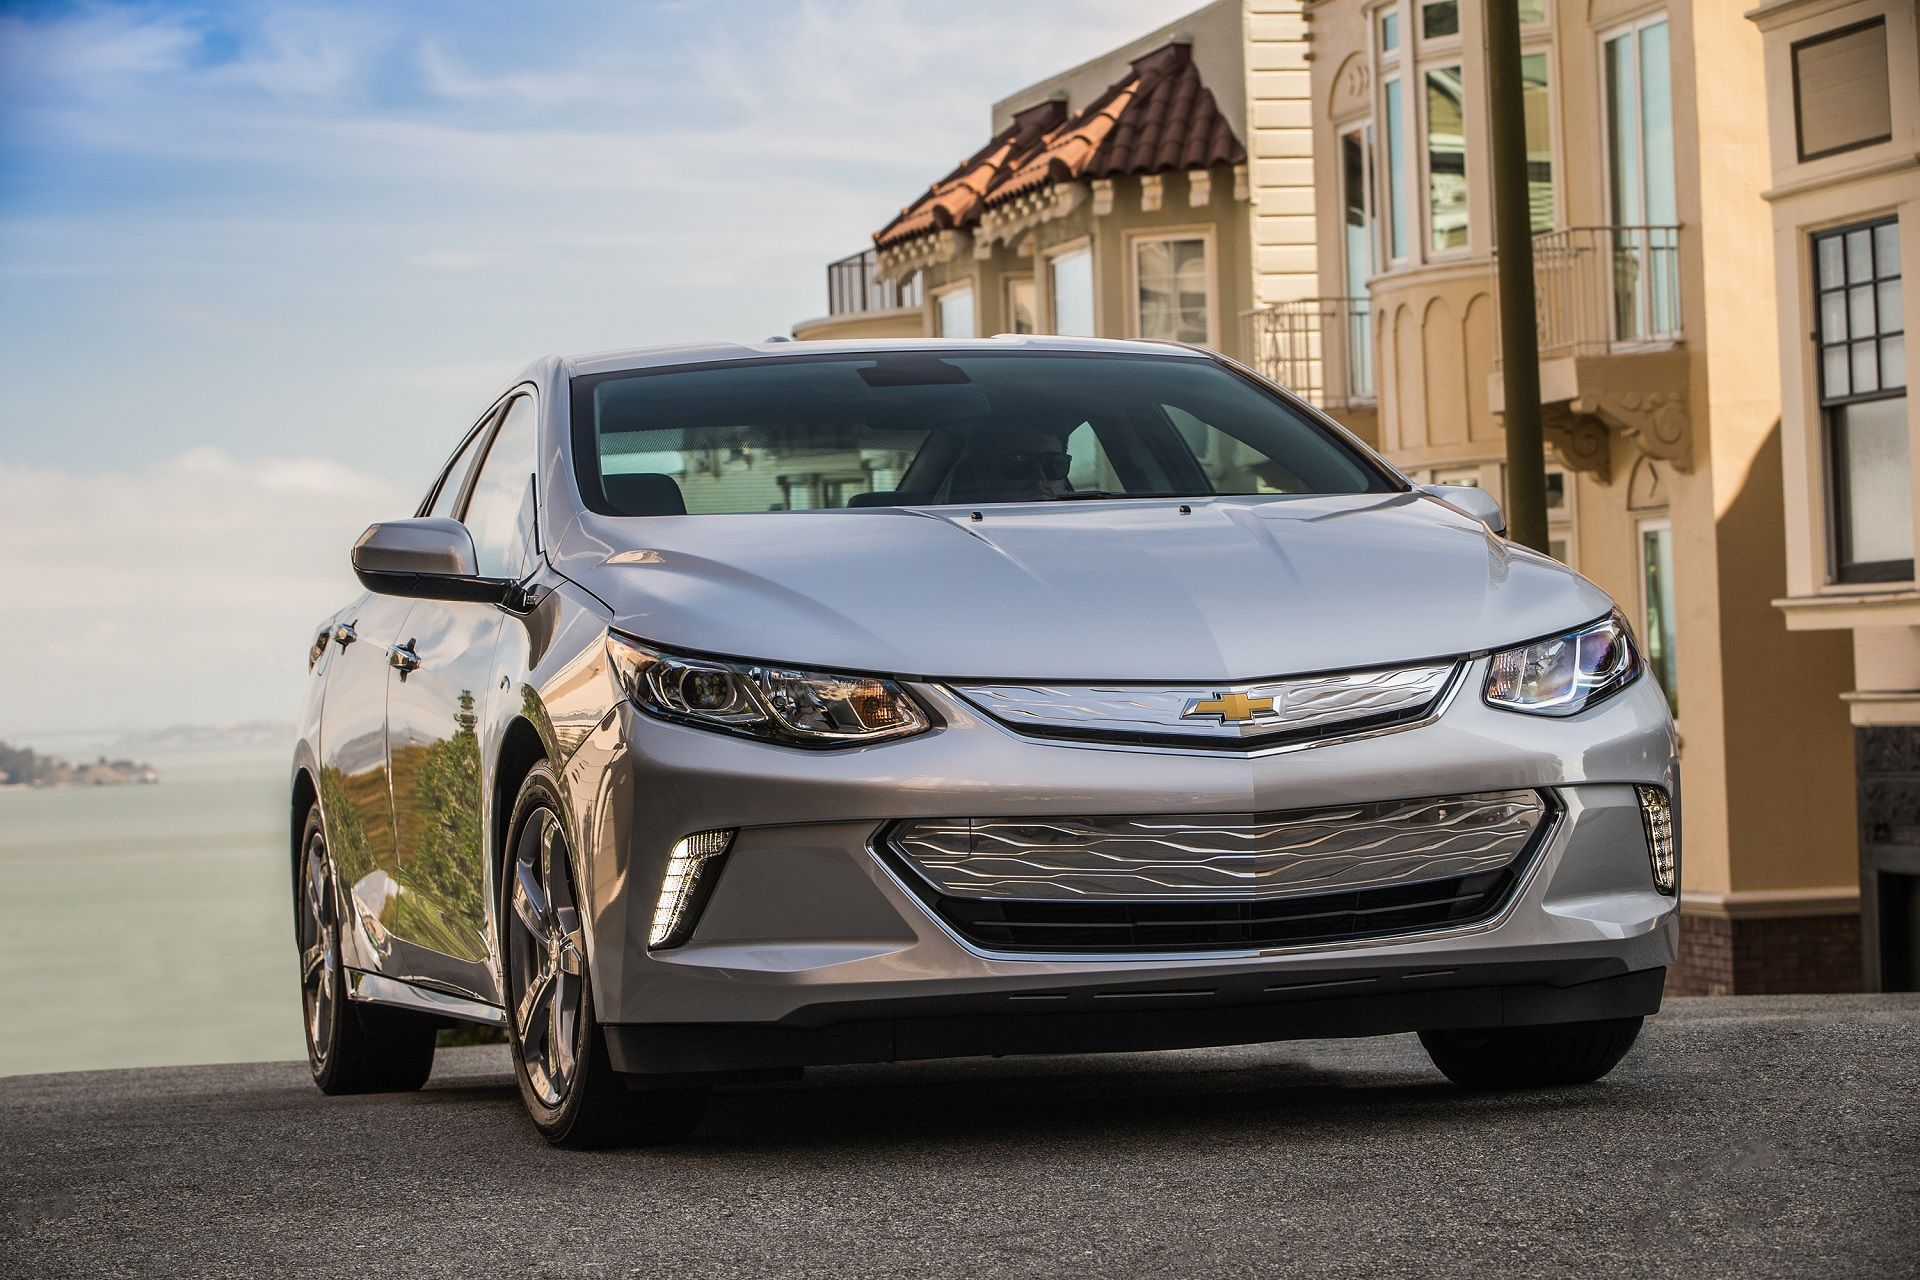 The 2017 Chevy Volt offers excellent fuel efficiency and refined